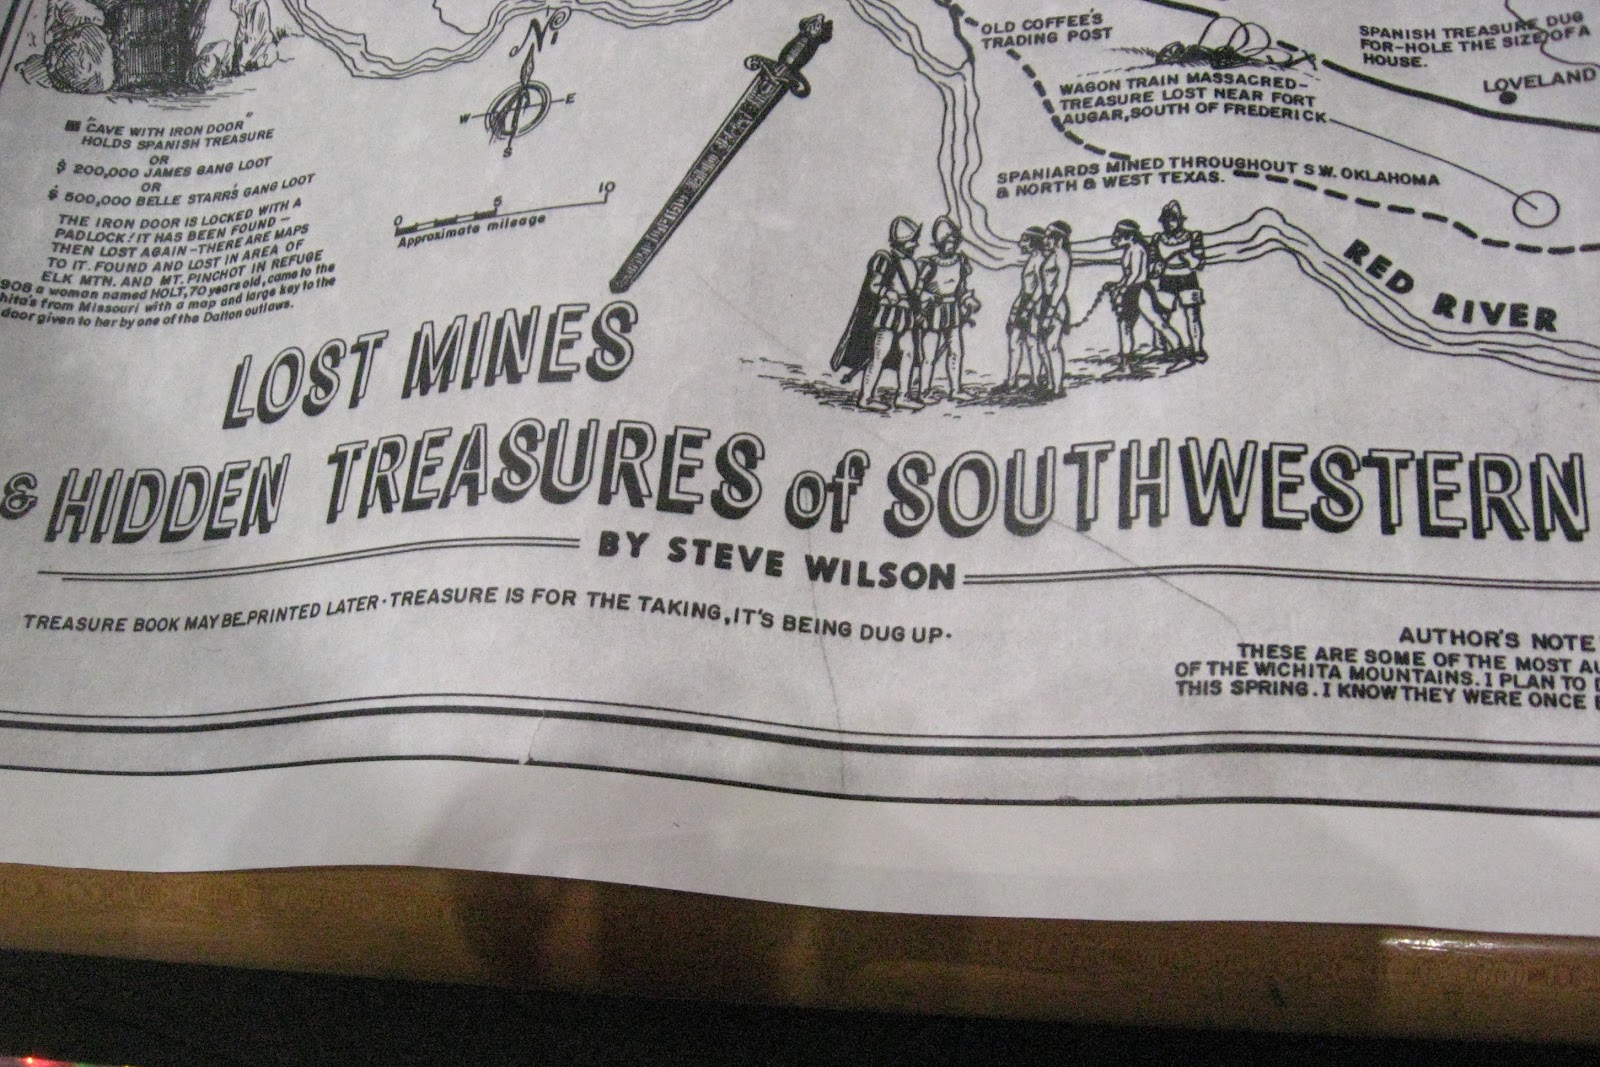 last weekend randy brought out a map of hidden treasures around the wichita mountains the map was produced by steve wilson in 1961 and can be found in the